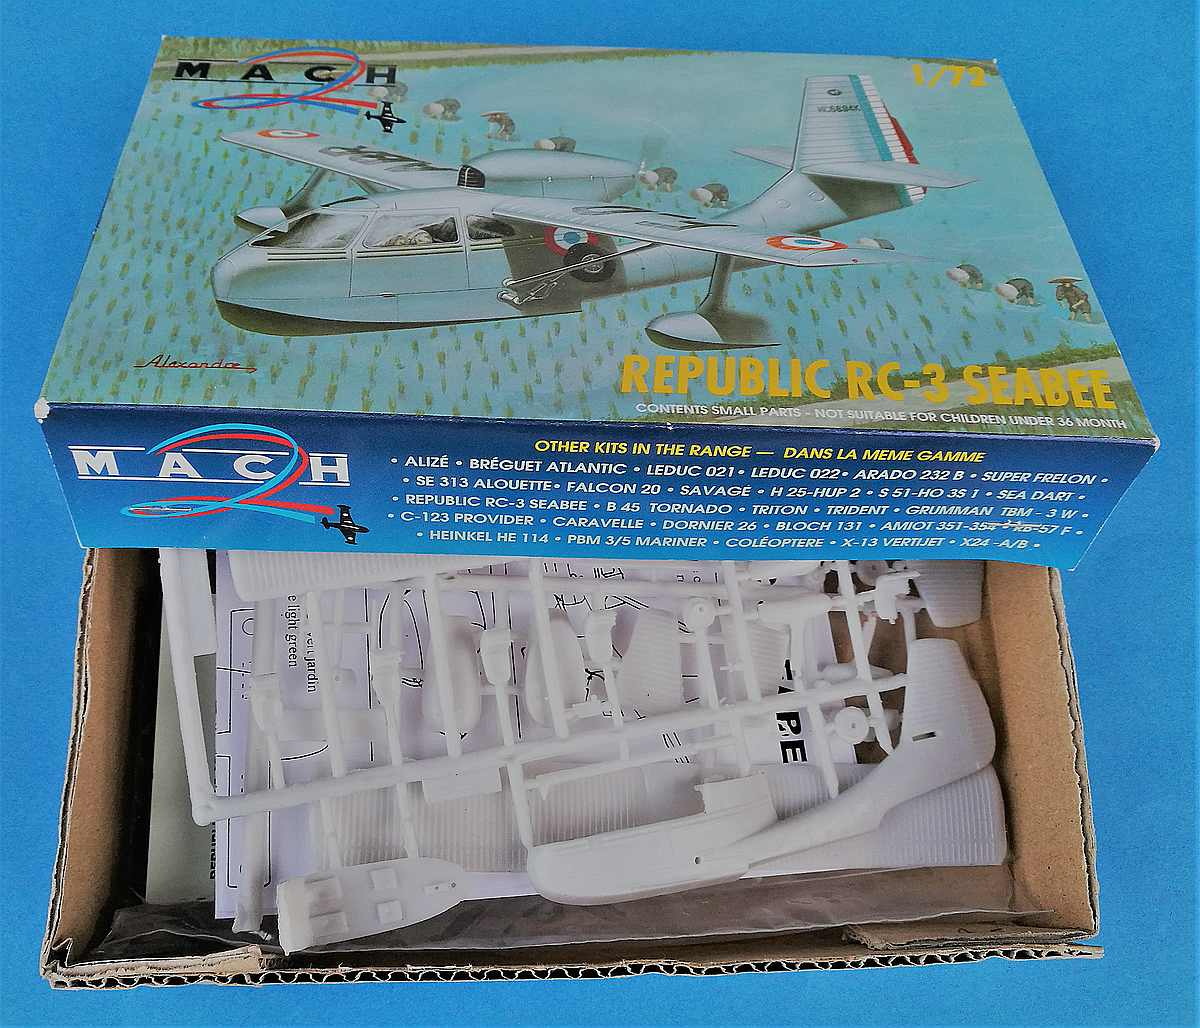 MACH2-GP-027-Republic-RC-3-Seabee-2 Republic RC-3 Seabee in 1:72 von Mach 2 # GP 027